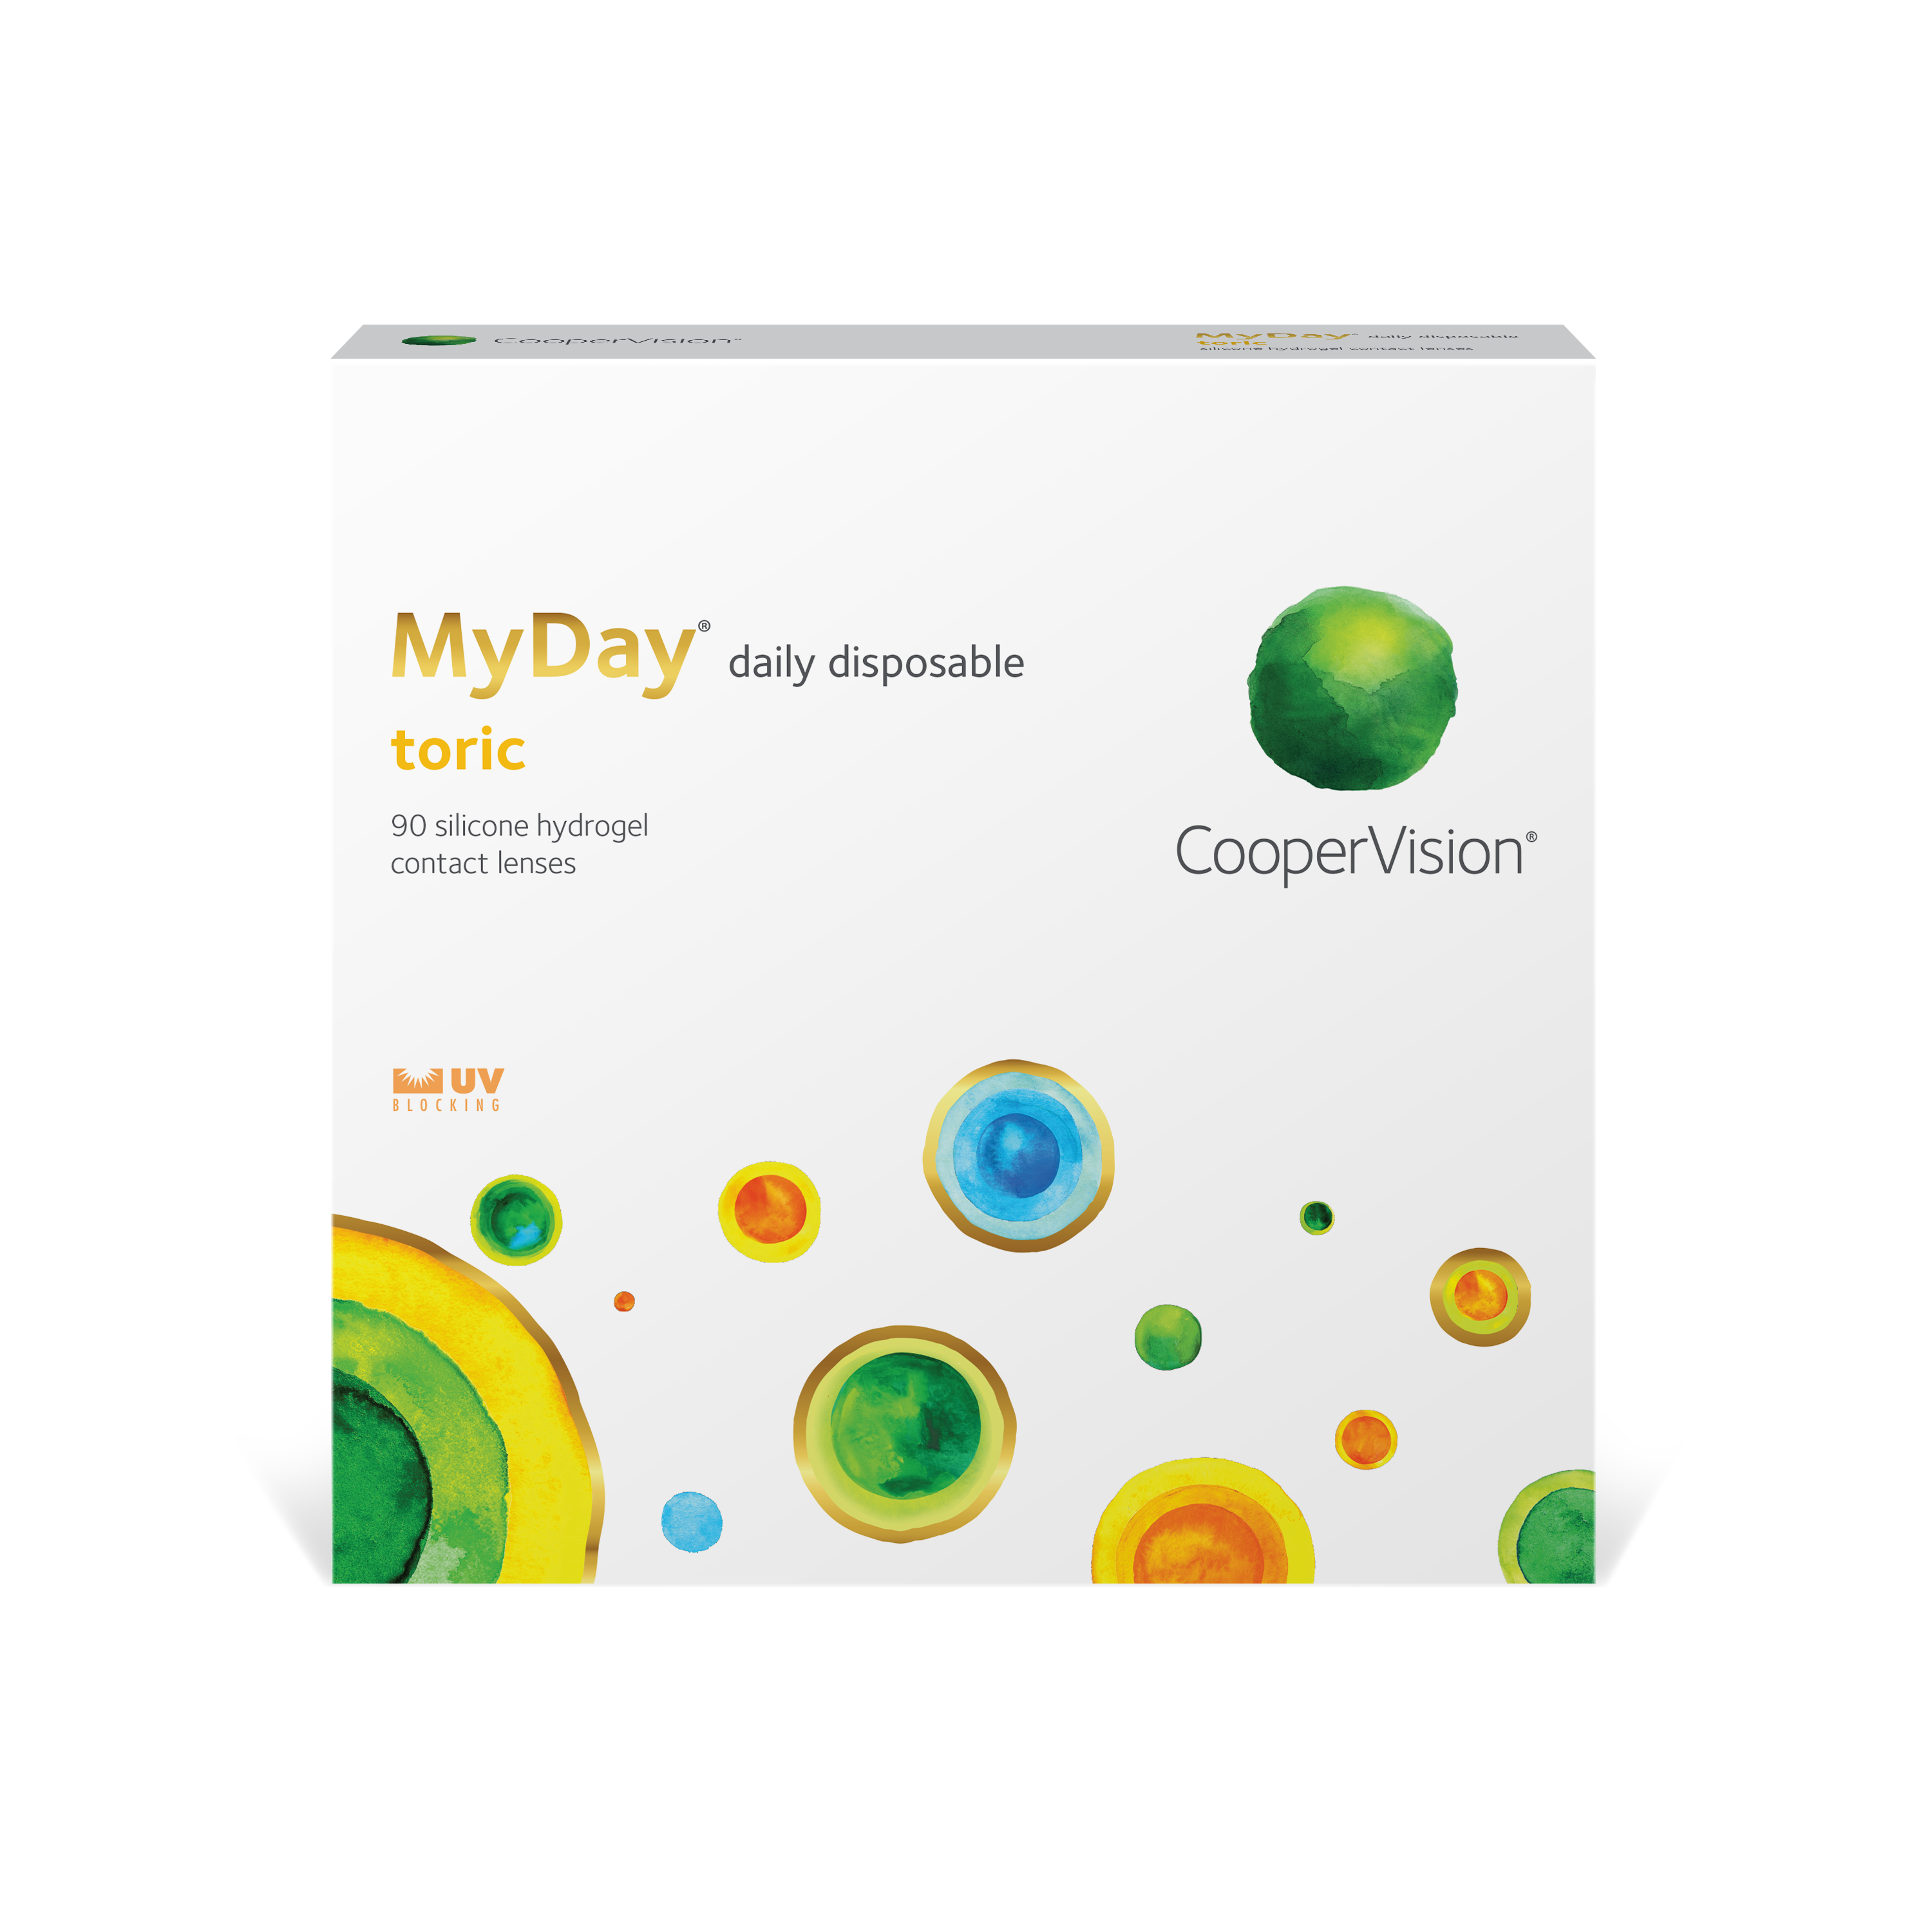 MyDay® daily disposable lenses